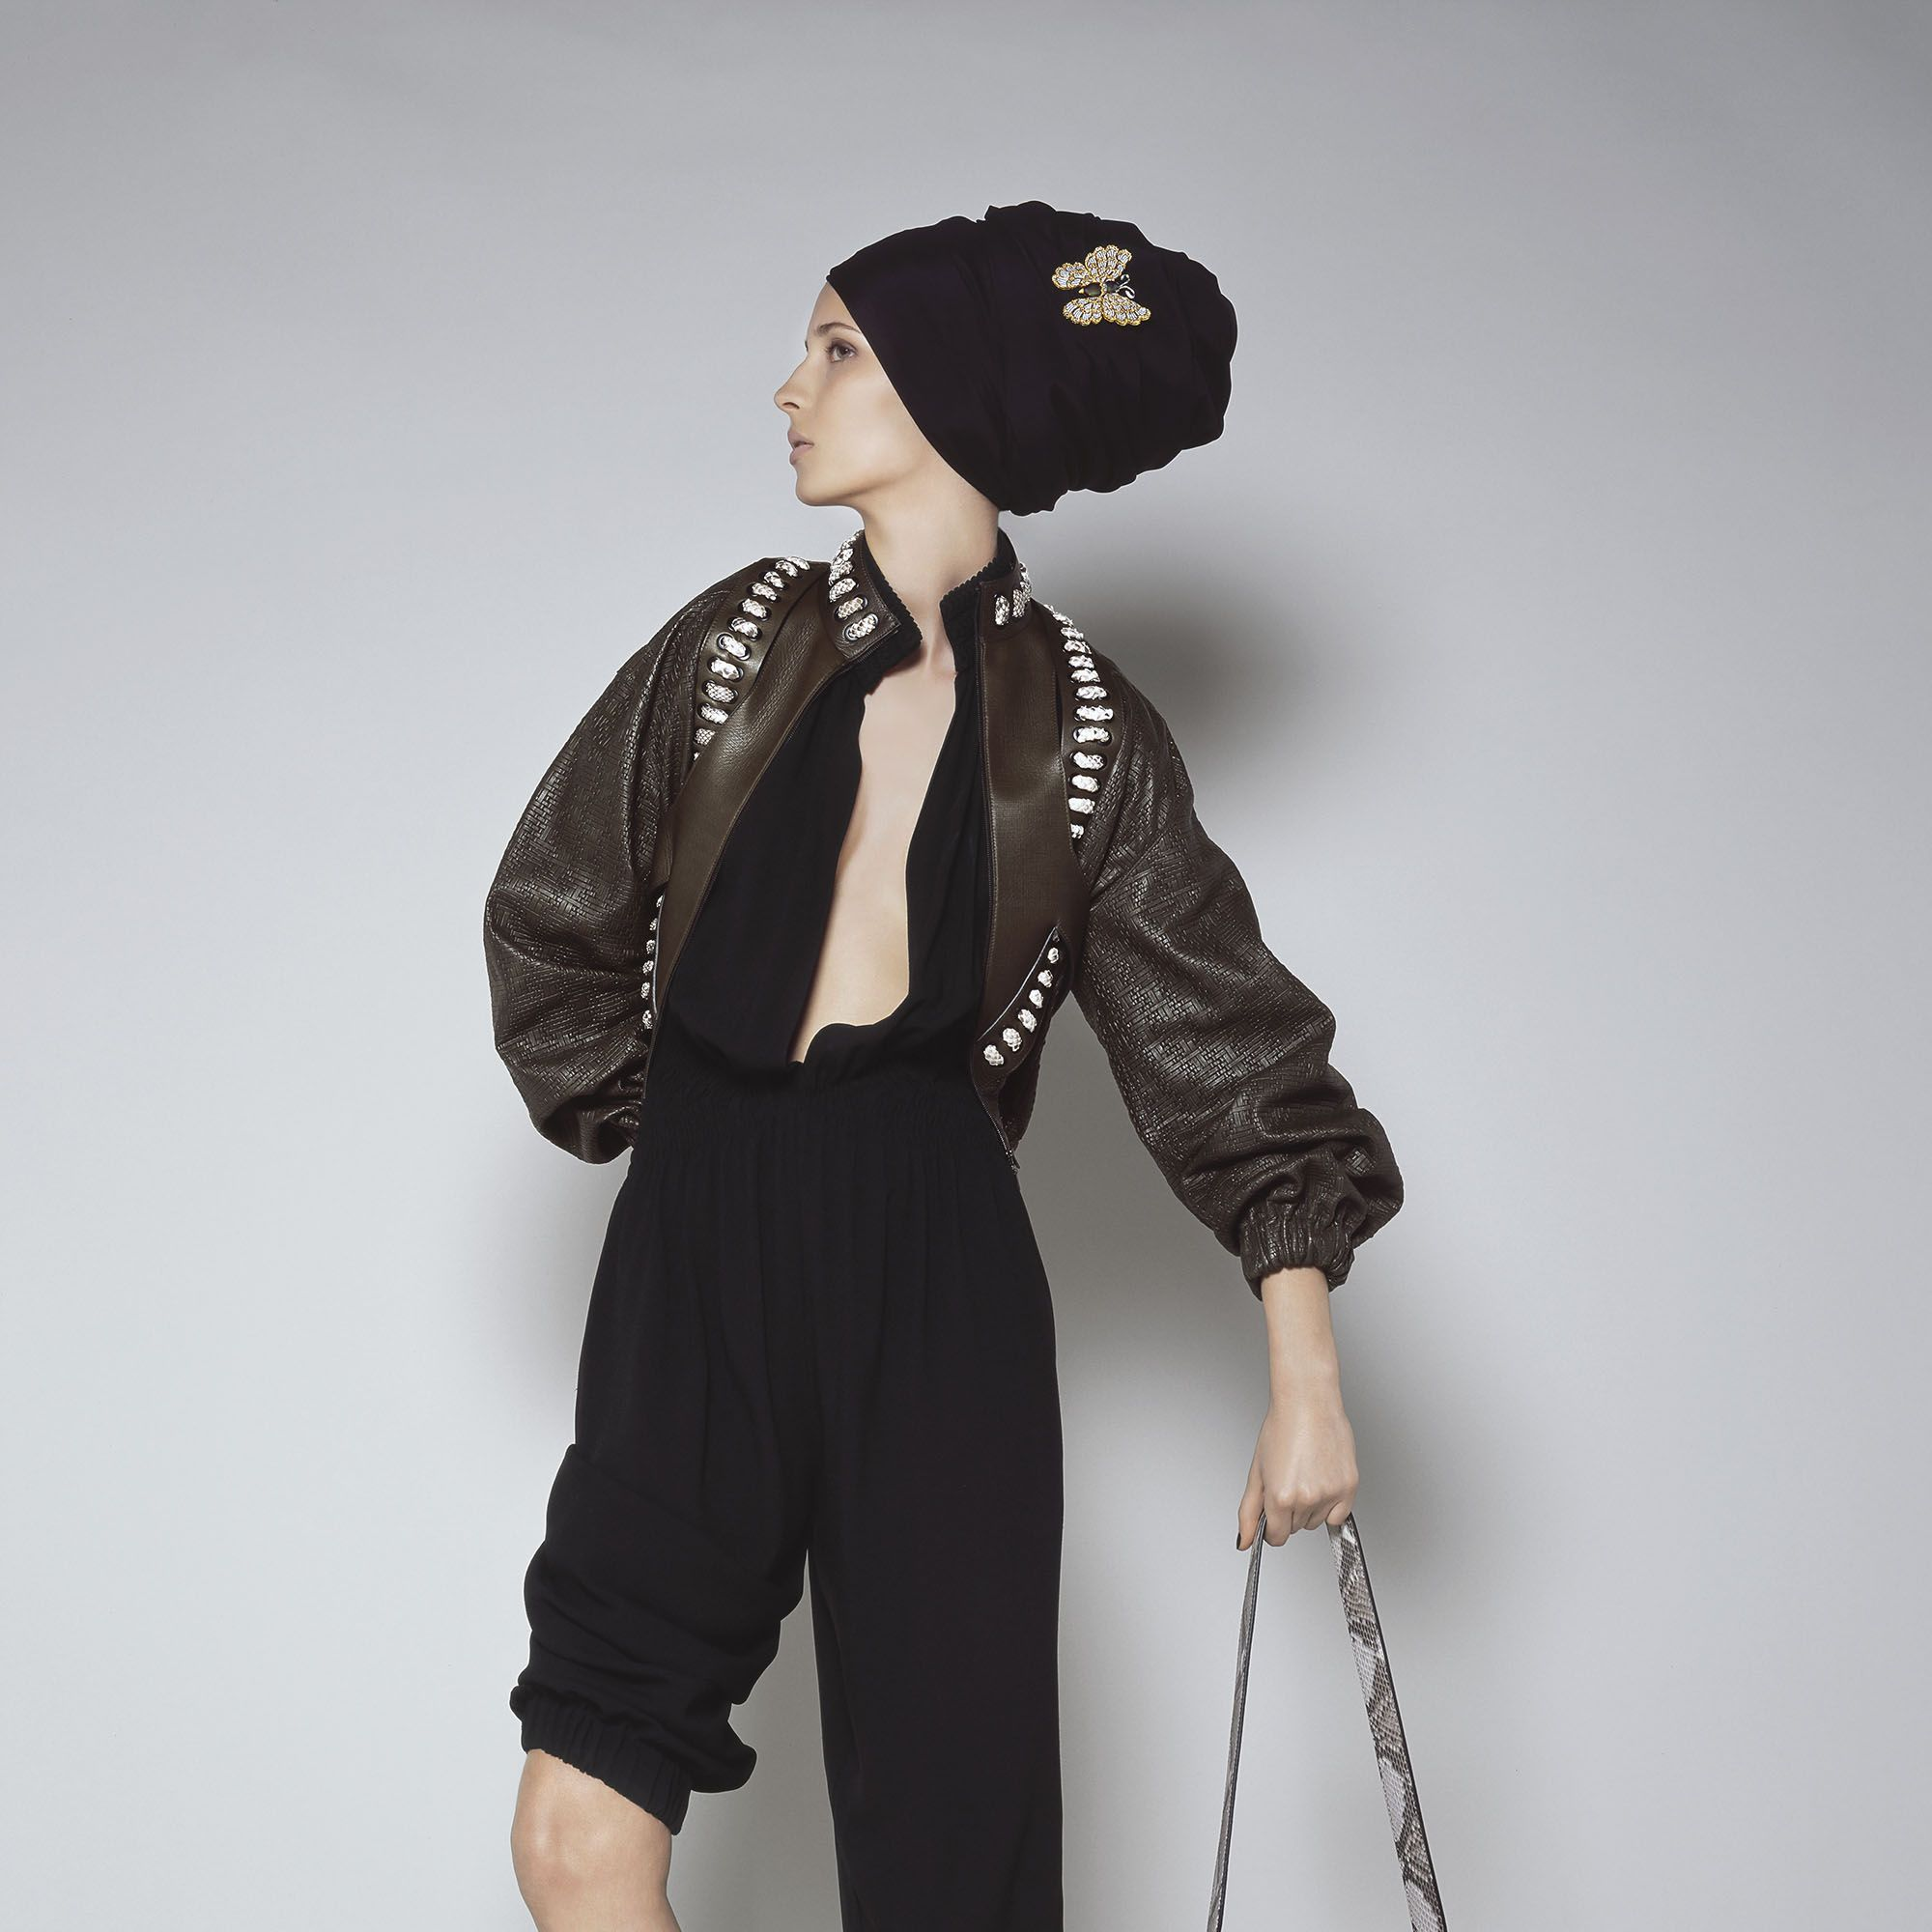 "<p><strong>Fendi</strong> jacket, price upon request, jumpsuit, $2,900, booties, $1,450, and bag, price upon request, 212-897-2244&#x3B; <strong>Bucelatti </strong>brooch, price upon request, <a href=""http://bucelatti.com"" target=""_blank"">bucelatti.com</a>. </p>"